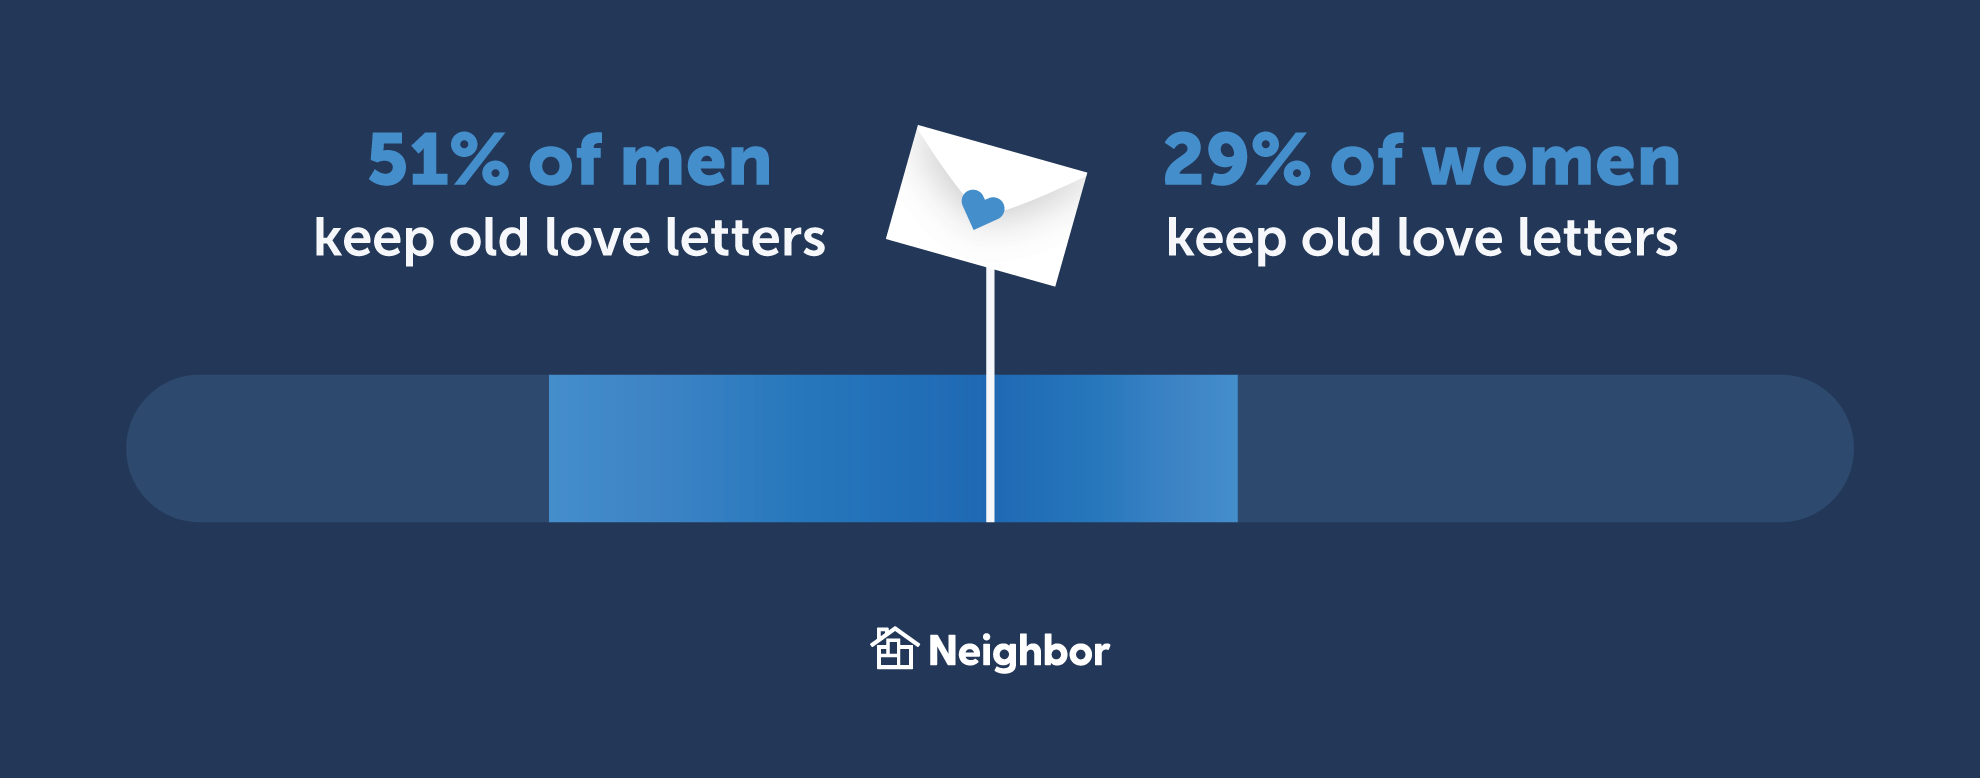 men keep old love letter more than women